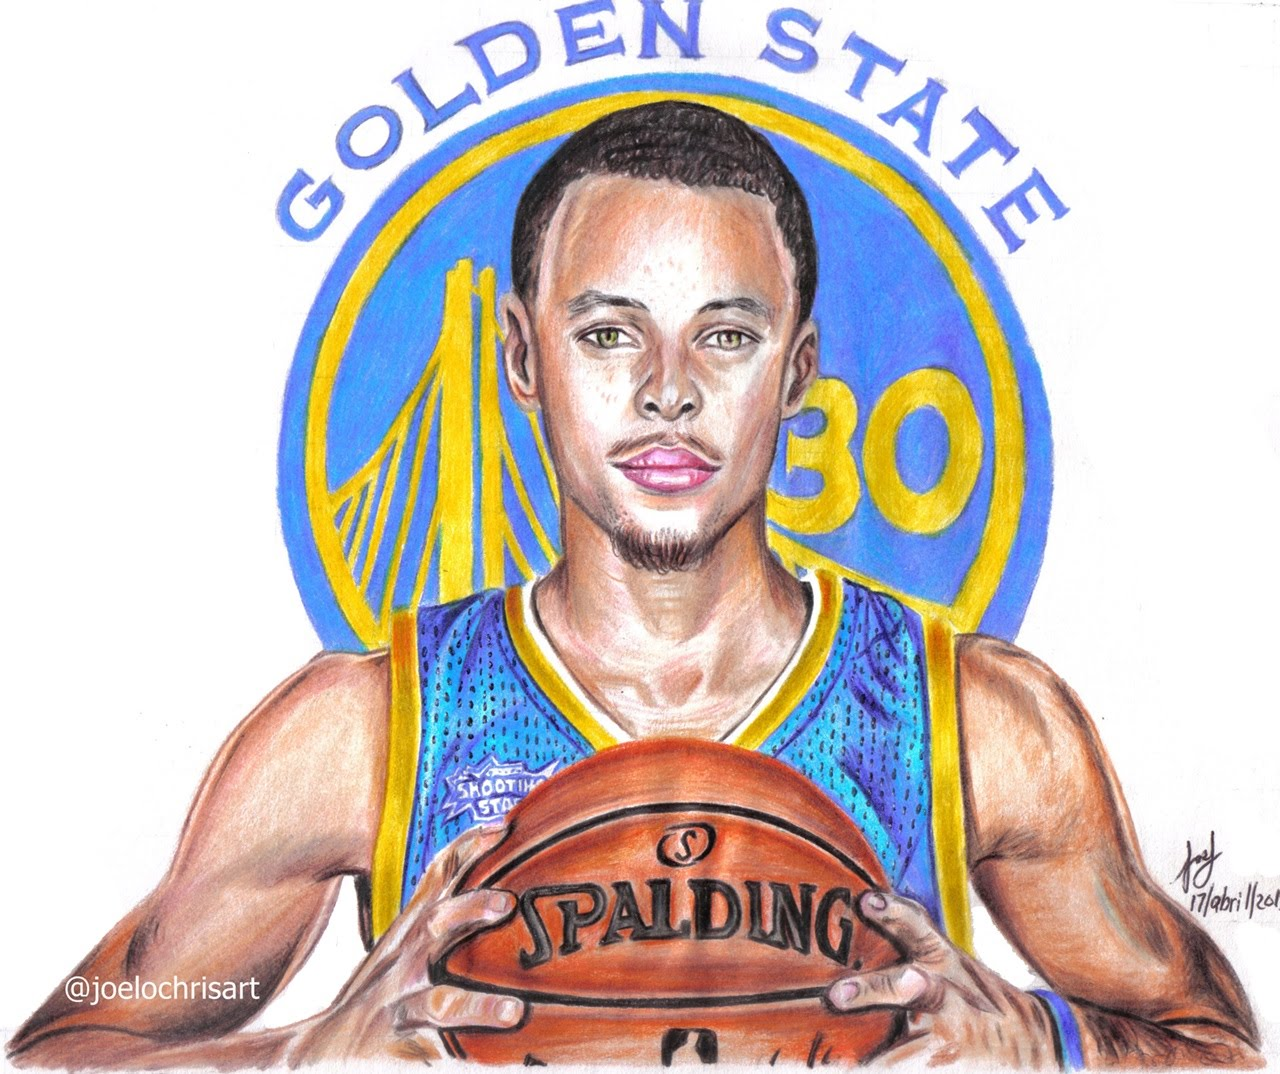 1280x1074 Drawing Stephen Curry Mvp 2015 And 2016 Nba Basketball Player